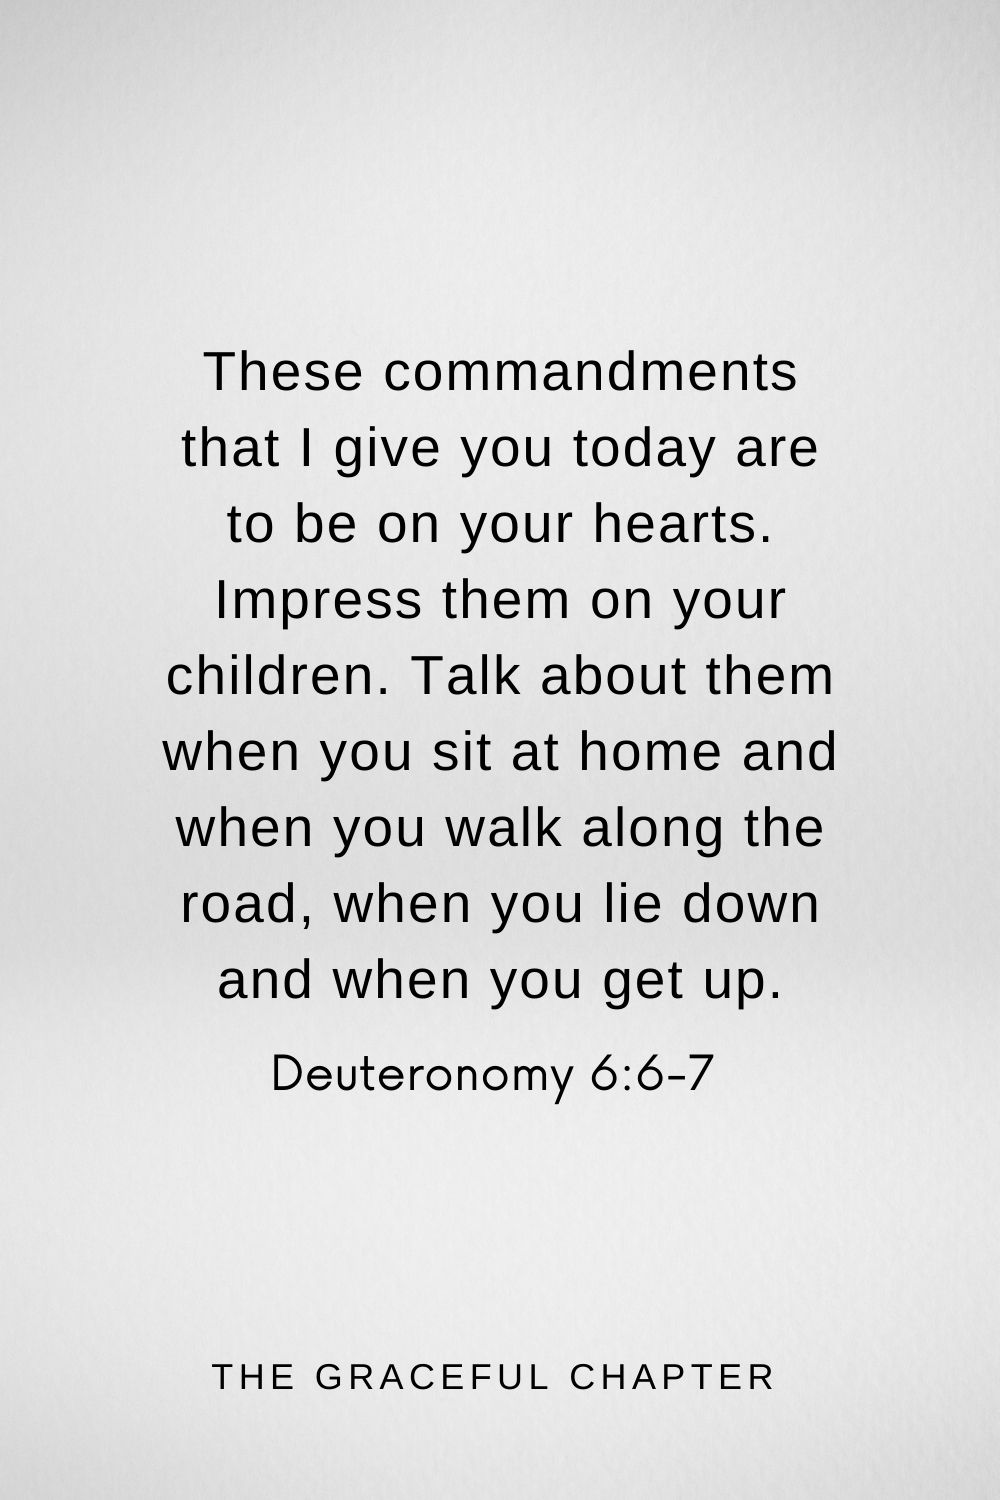 These commandments that I give you today are to be on your hearts. Impress them on your children. Talk about them when you sit at home and when you walk along the road, when you lie down and when you get up. Deuteronomy 6:6-7